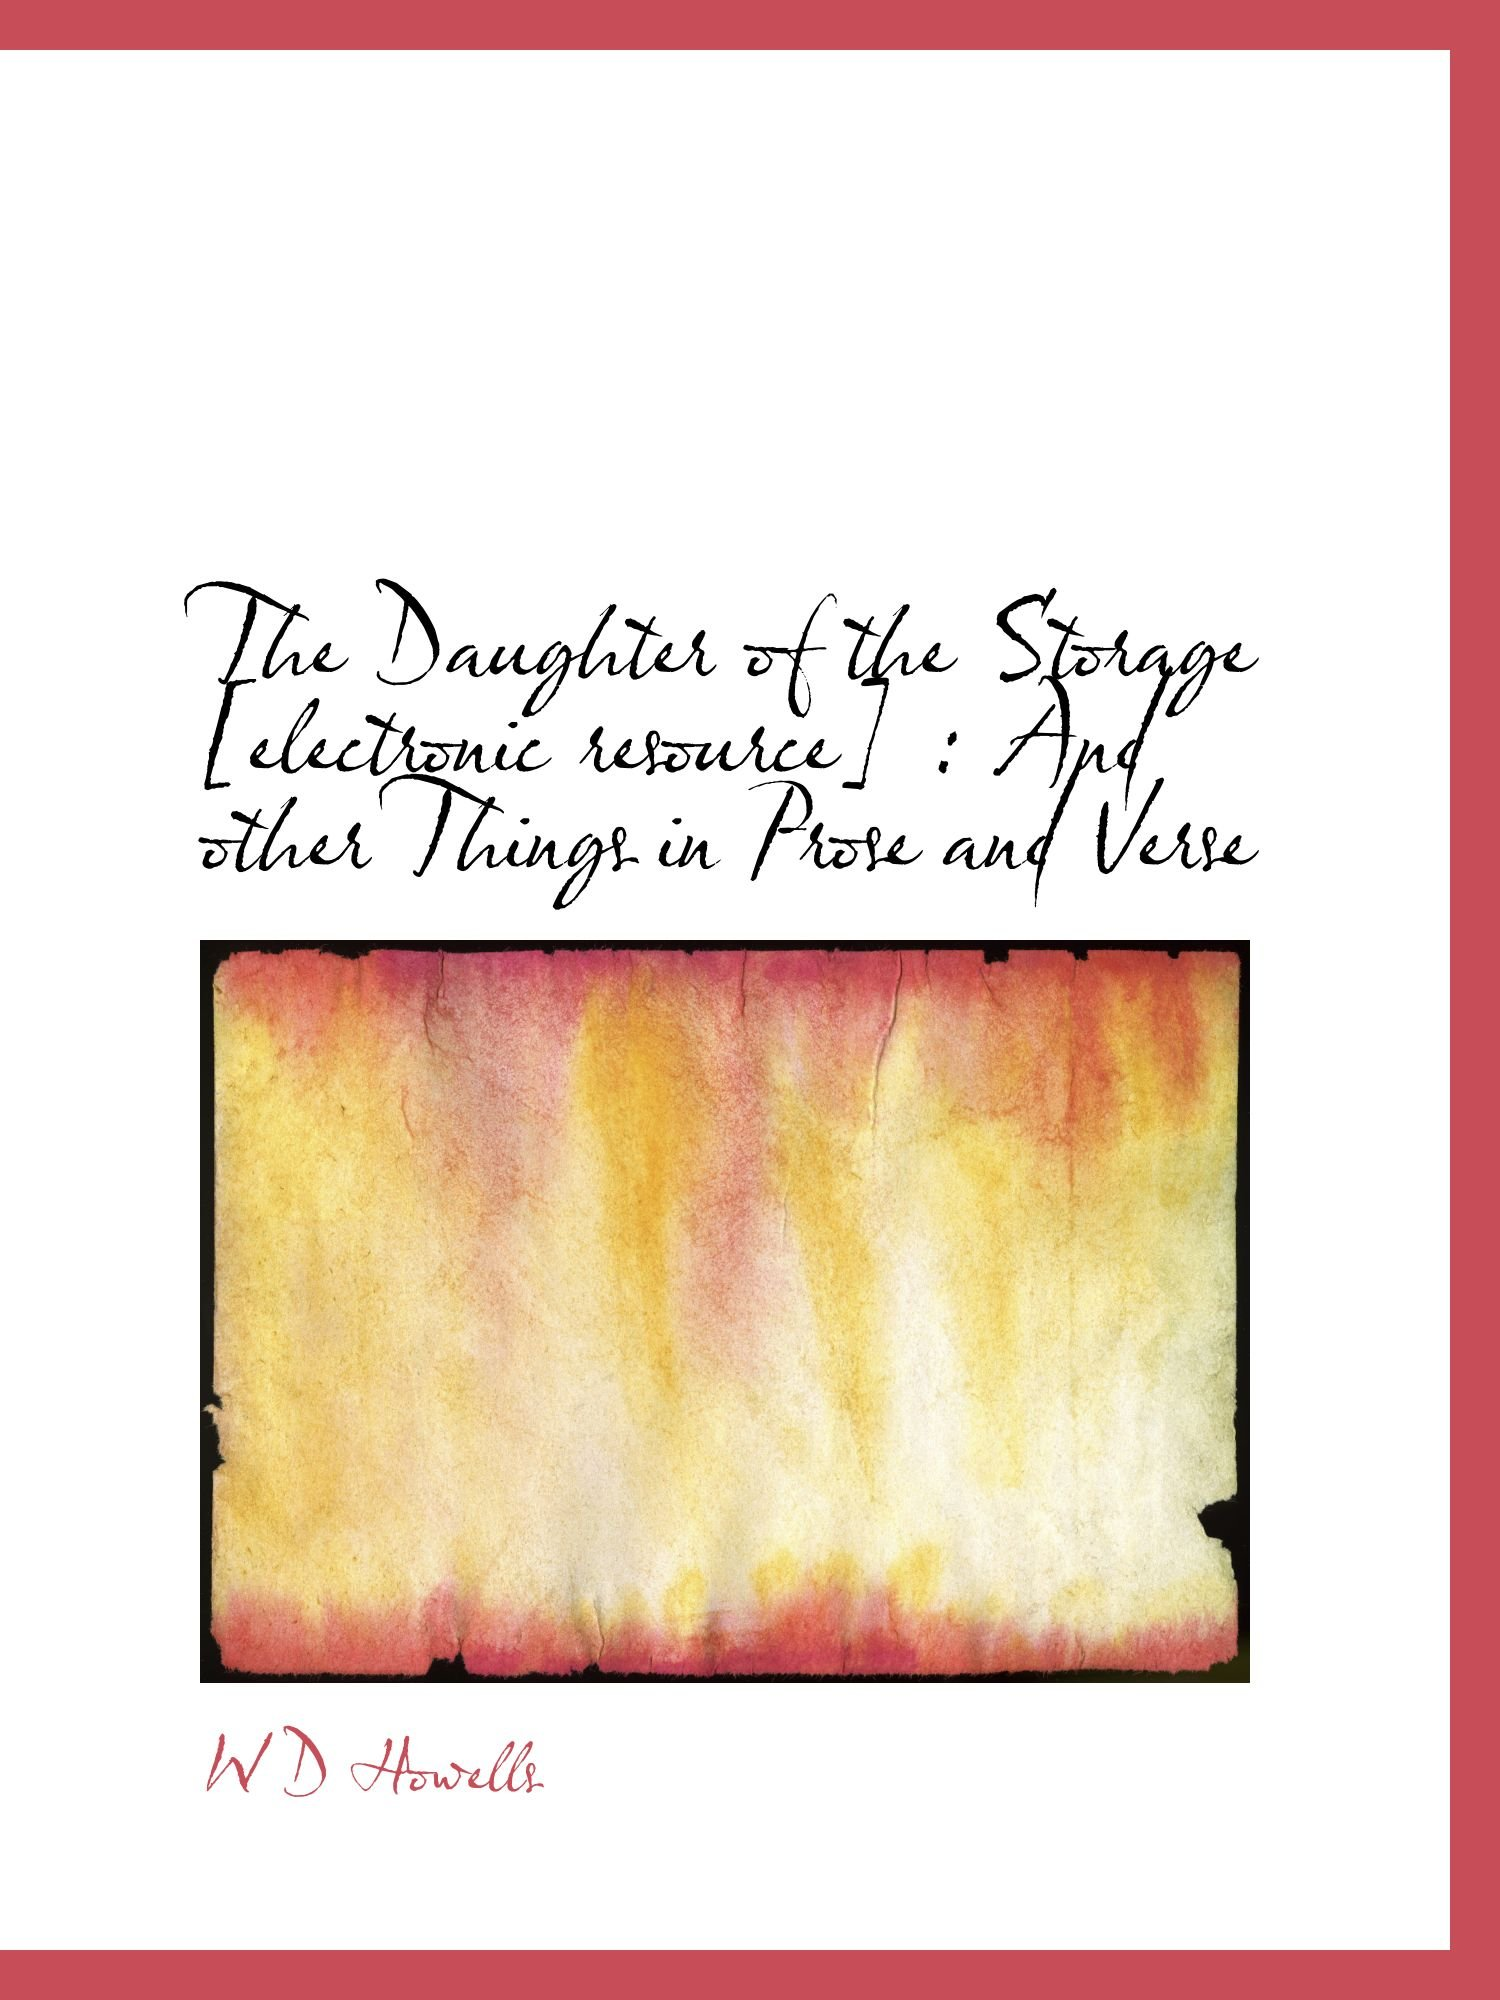 The Daughter of the Storage [electronic resource] : And other Things in Prose and Verse pdf epub